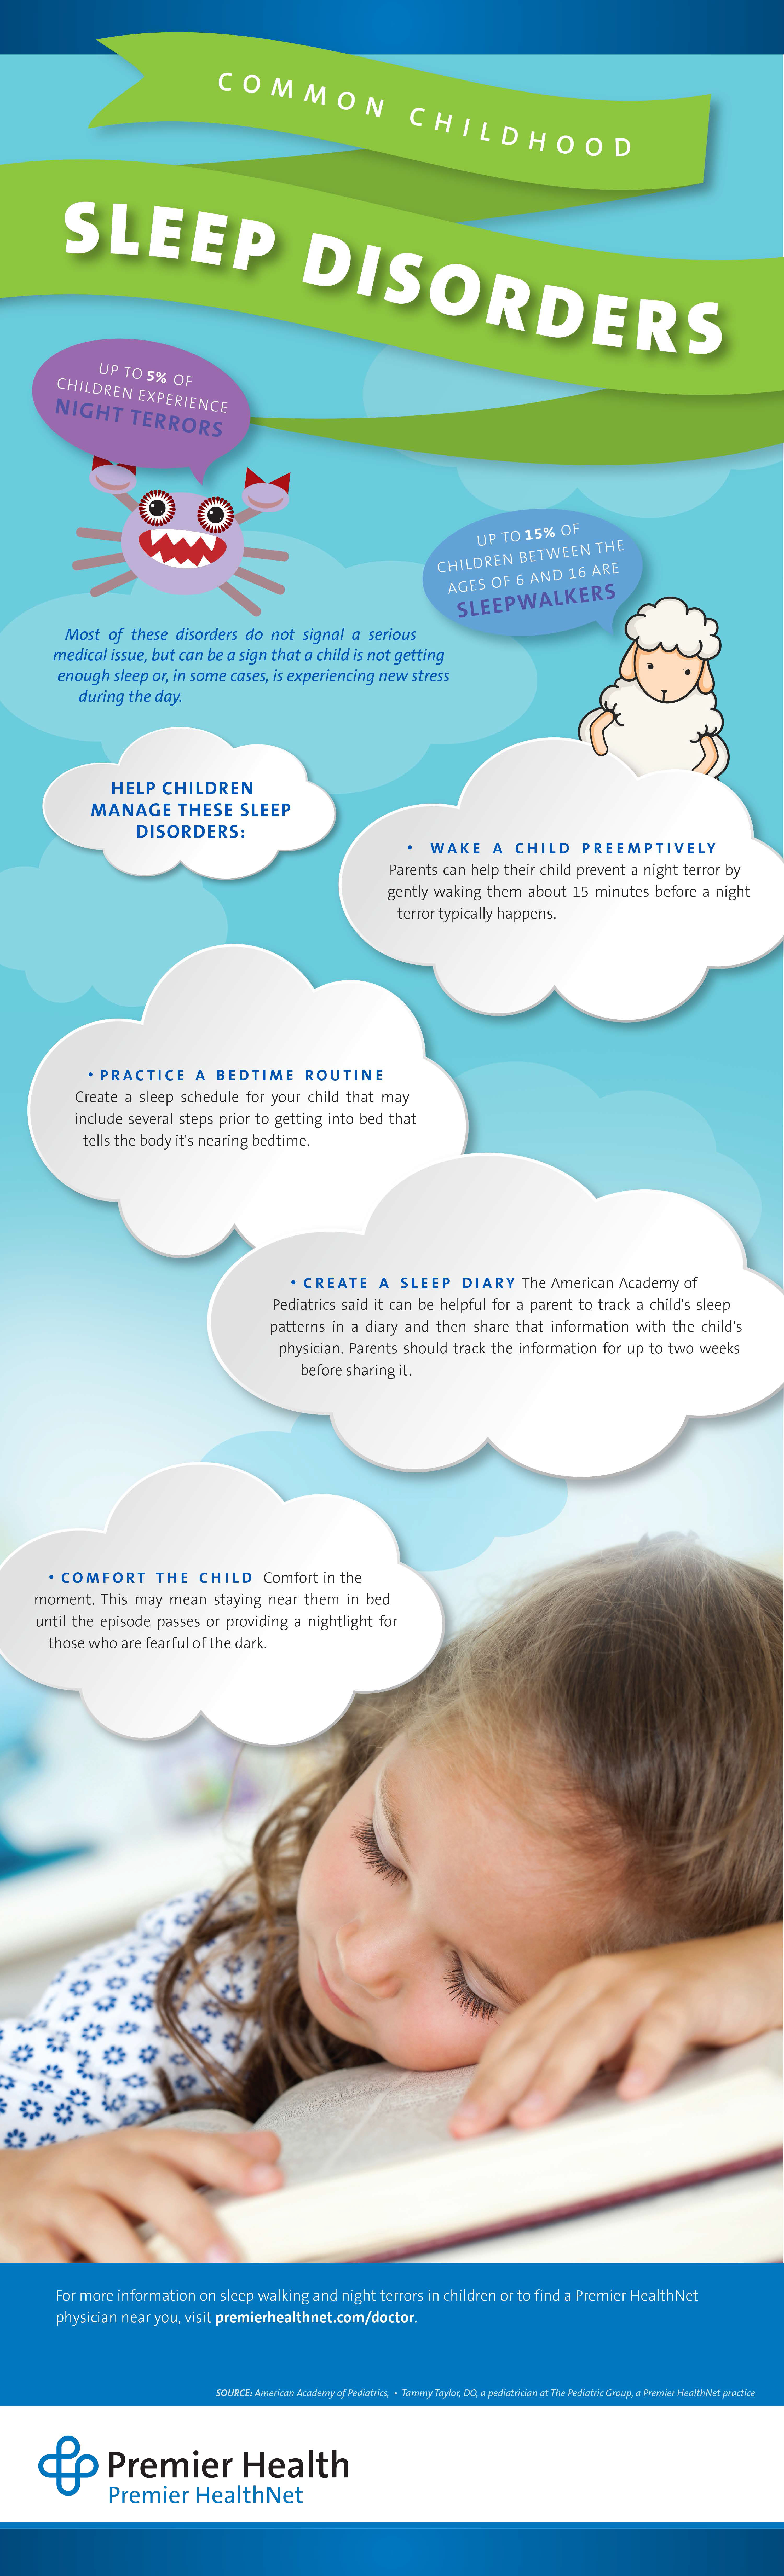 Childhood Sleep Disorders Infographic